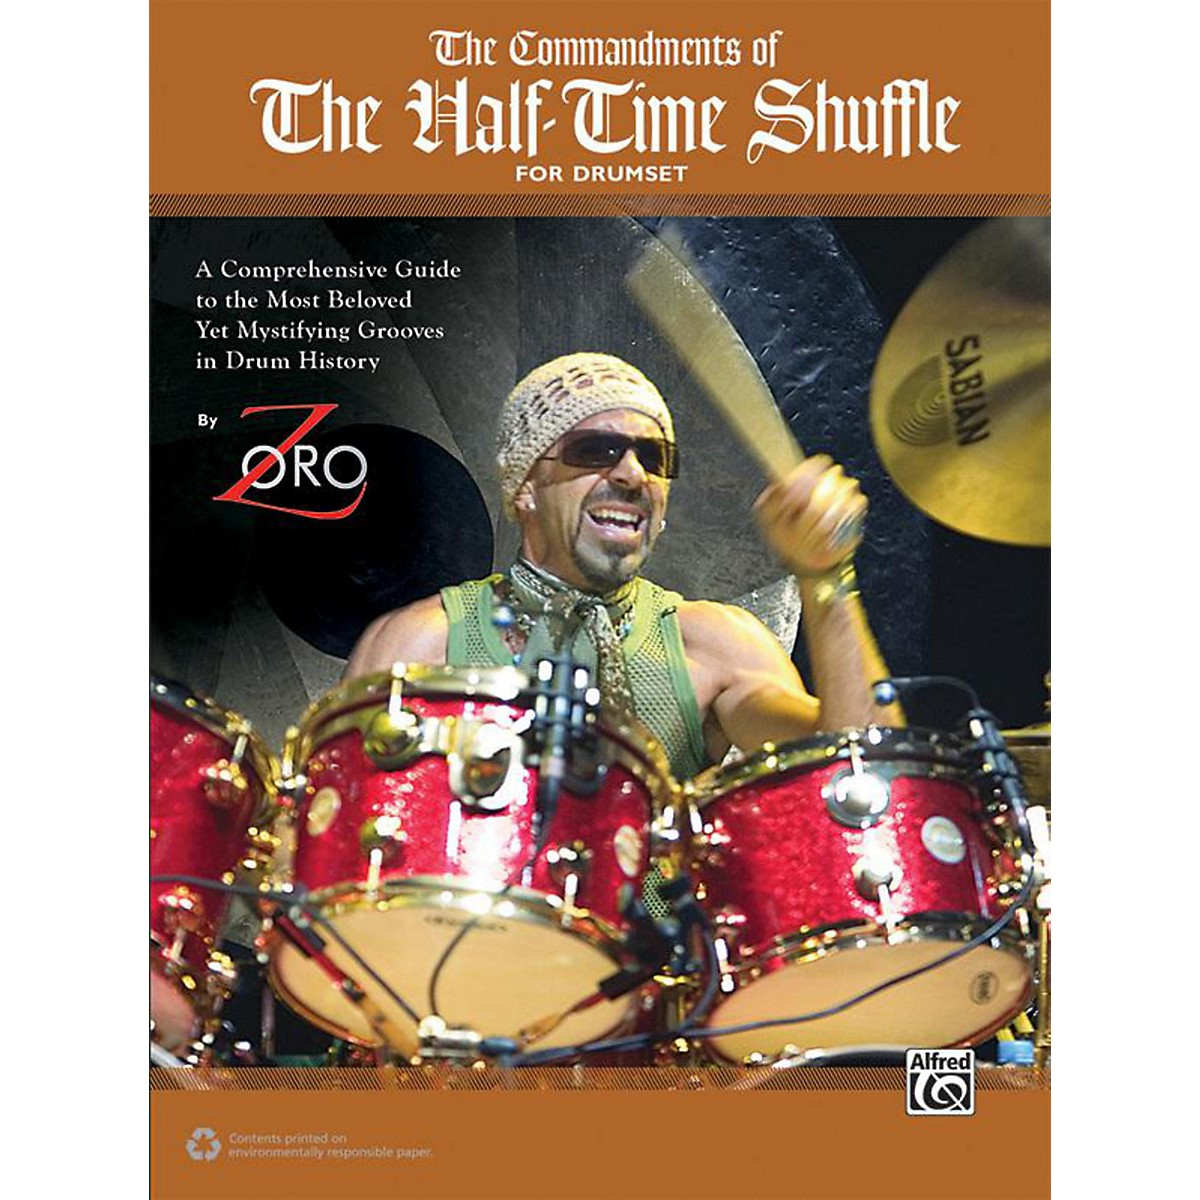 Alfred Commandments of the Half-Time Shuffle by Zoro Drum Book